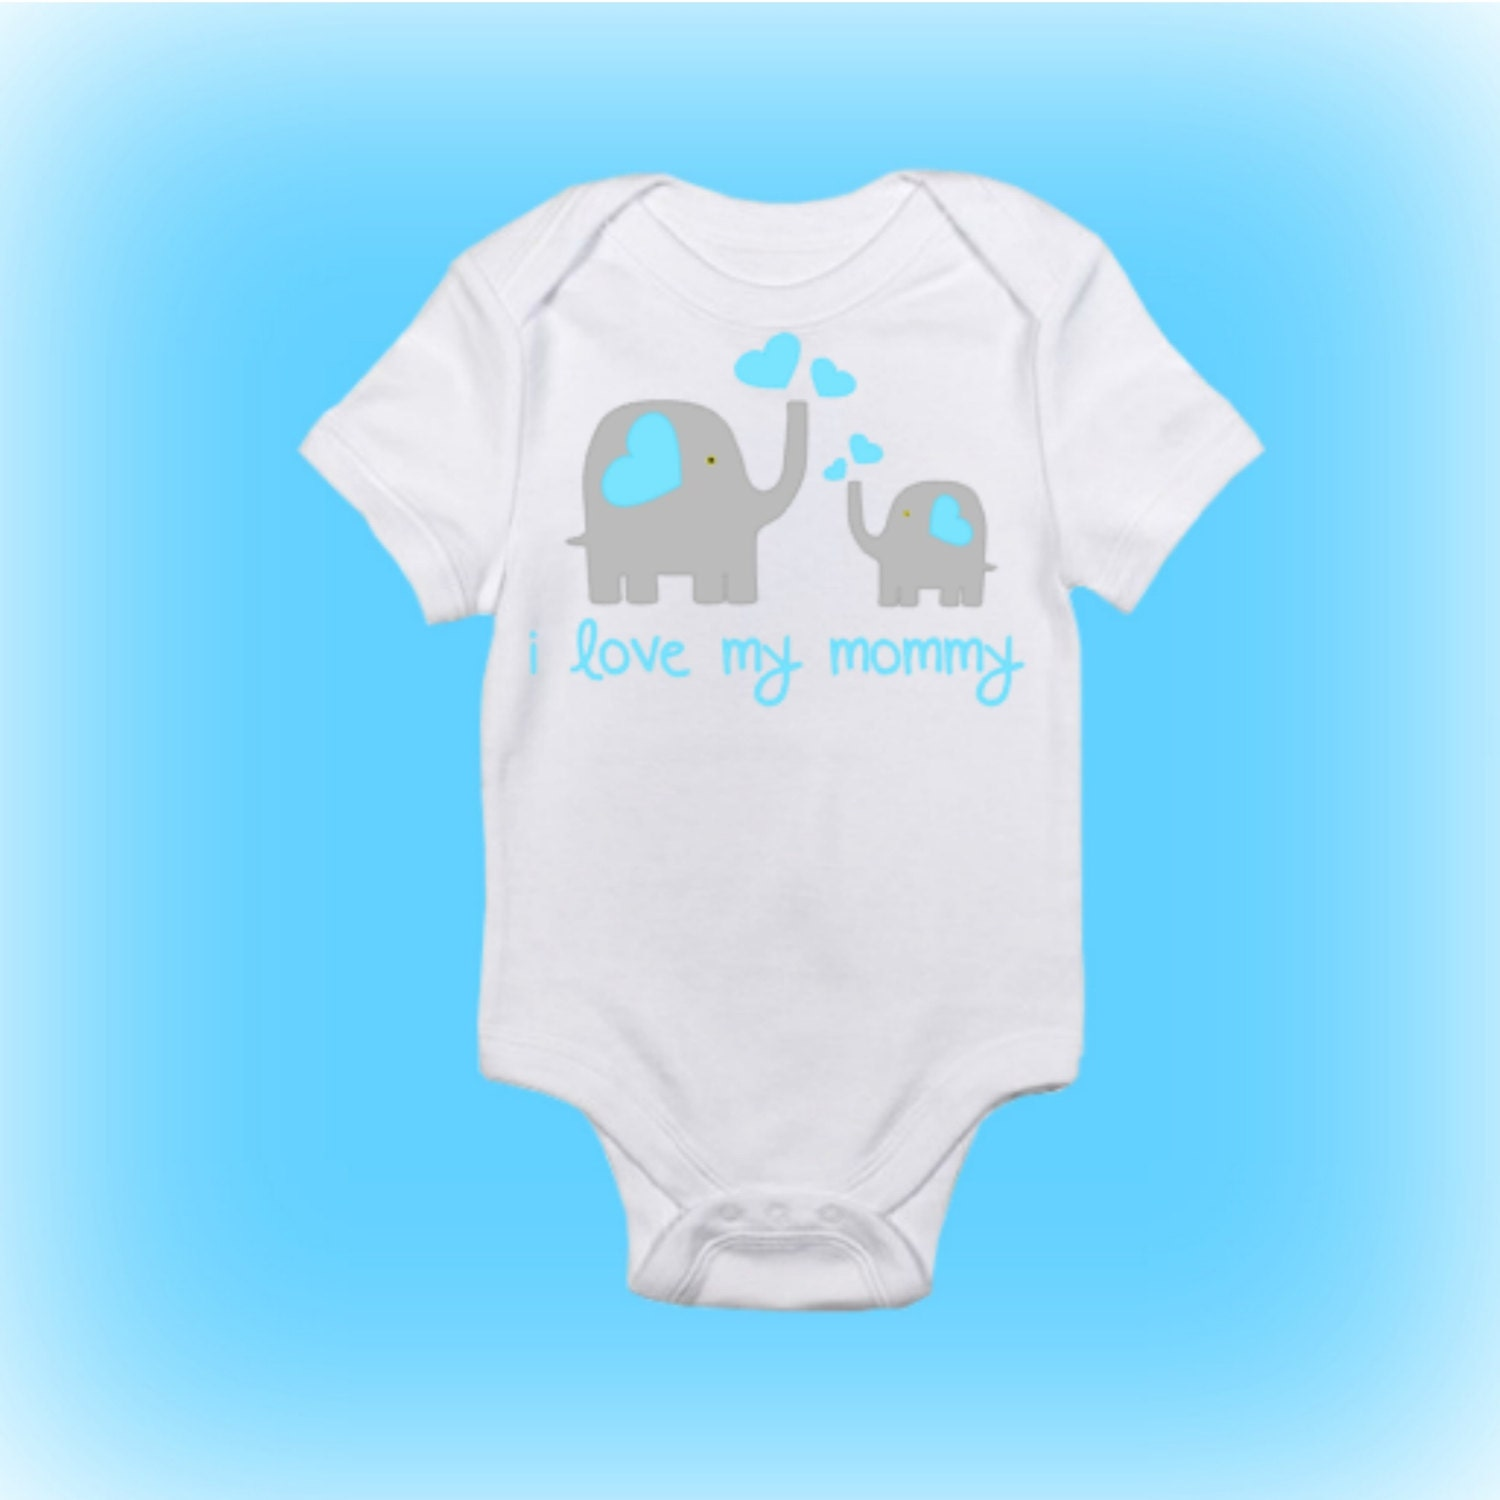 231445586144 together with 23224378 furthermore Mariah Carey Camel Toe Her Unfortunate Style Statement 192218064 in addition 336354 32527552956 also Gift For New Daddy Funny Baby Onesie New. on gerber baby clothes